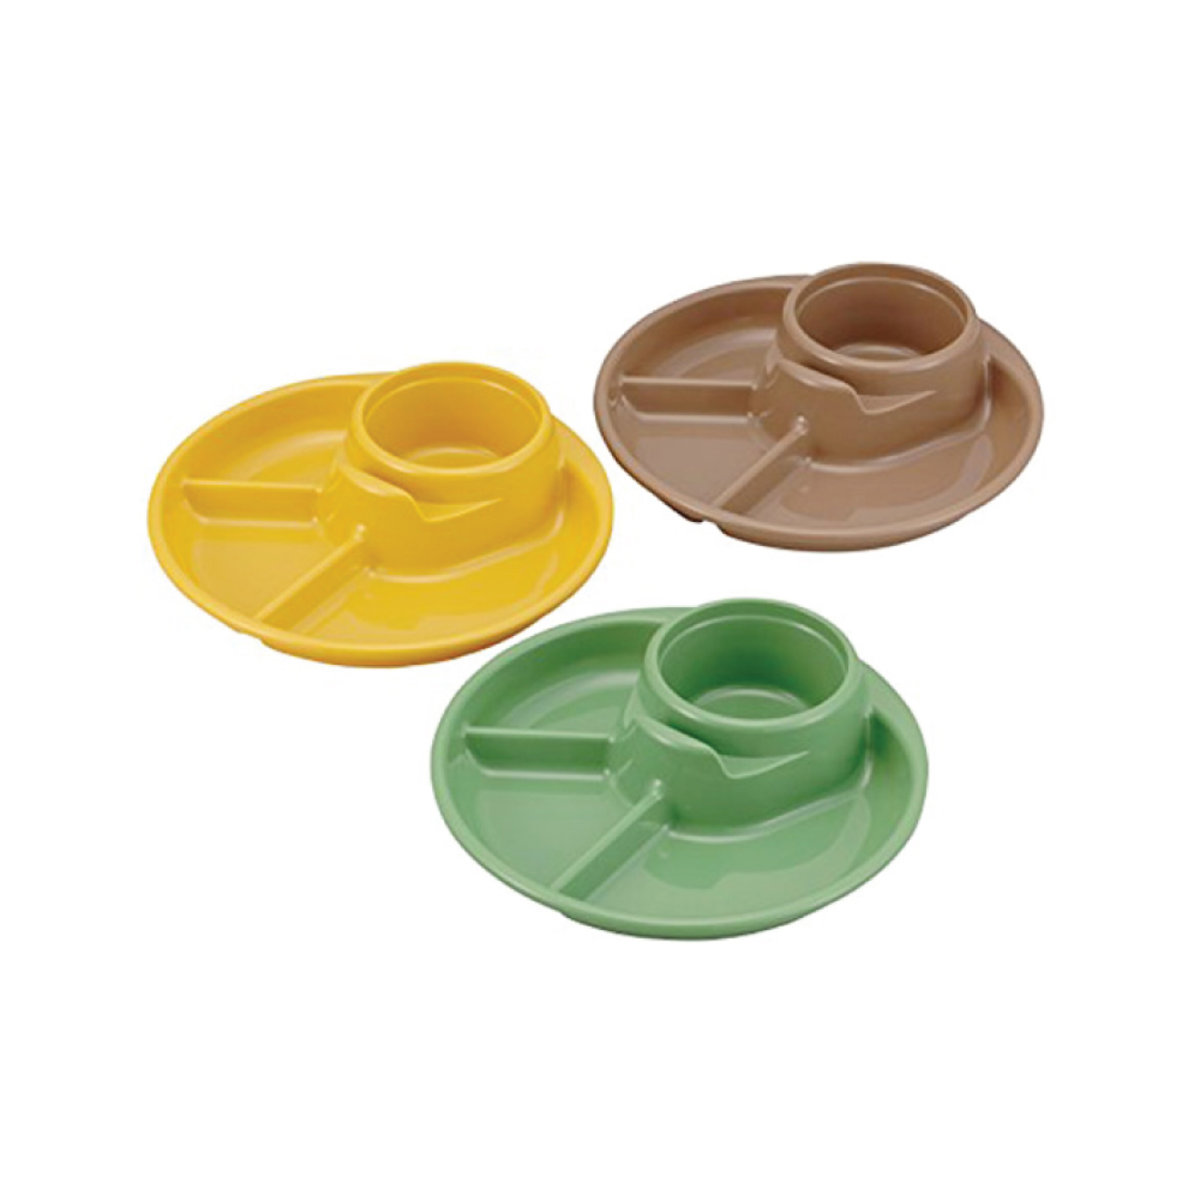 BBQ round food dish (3 packs) (parallel import)